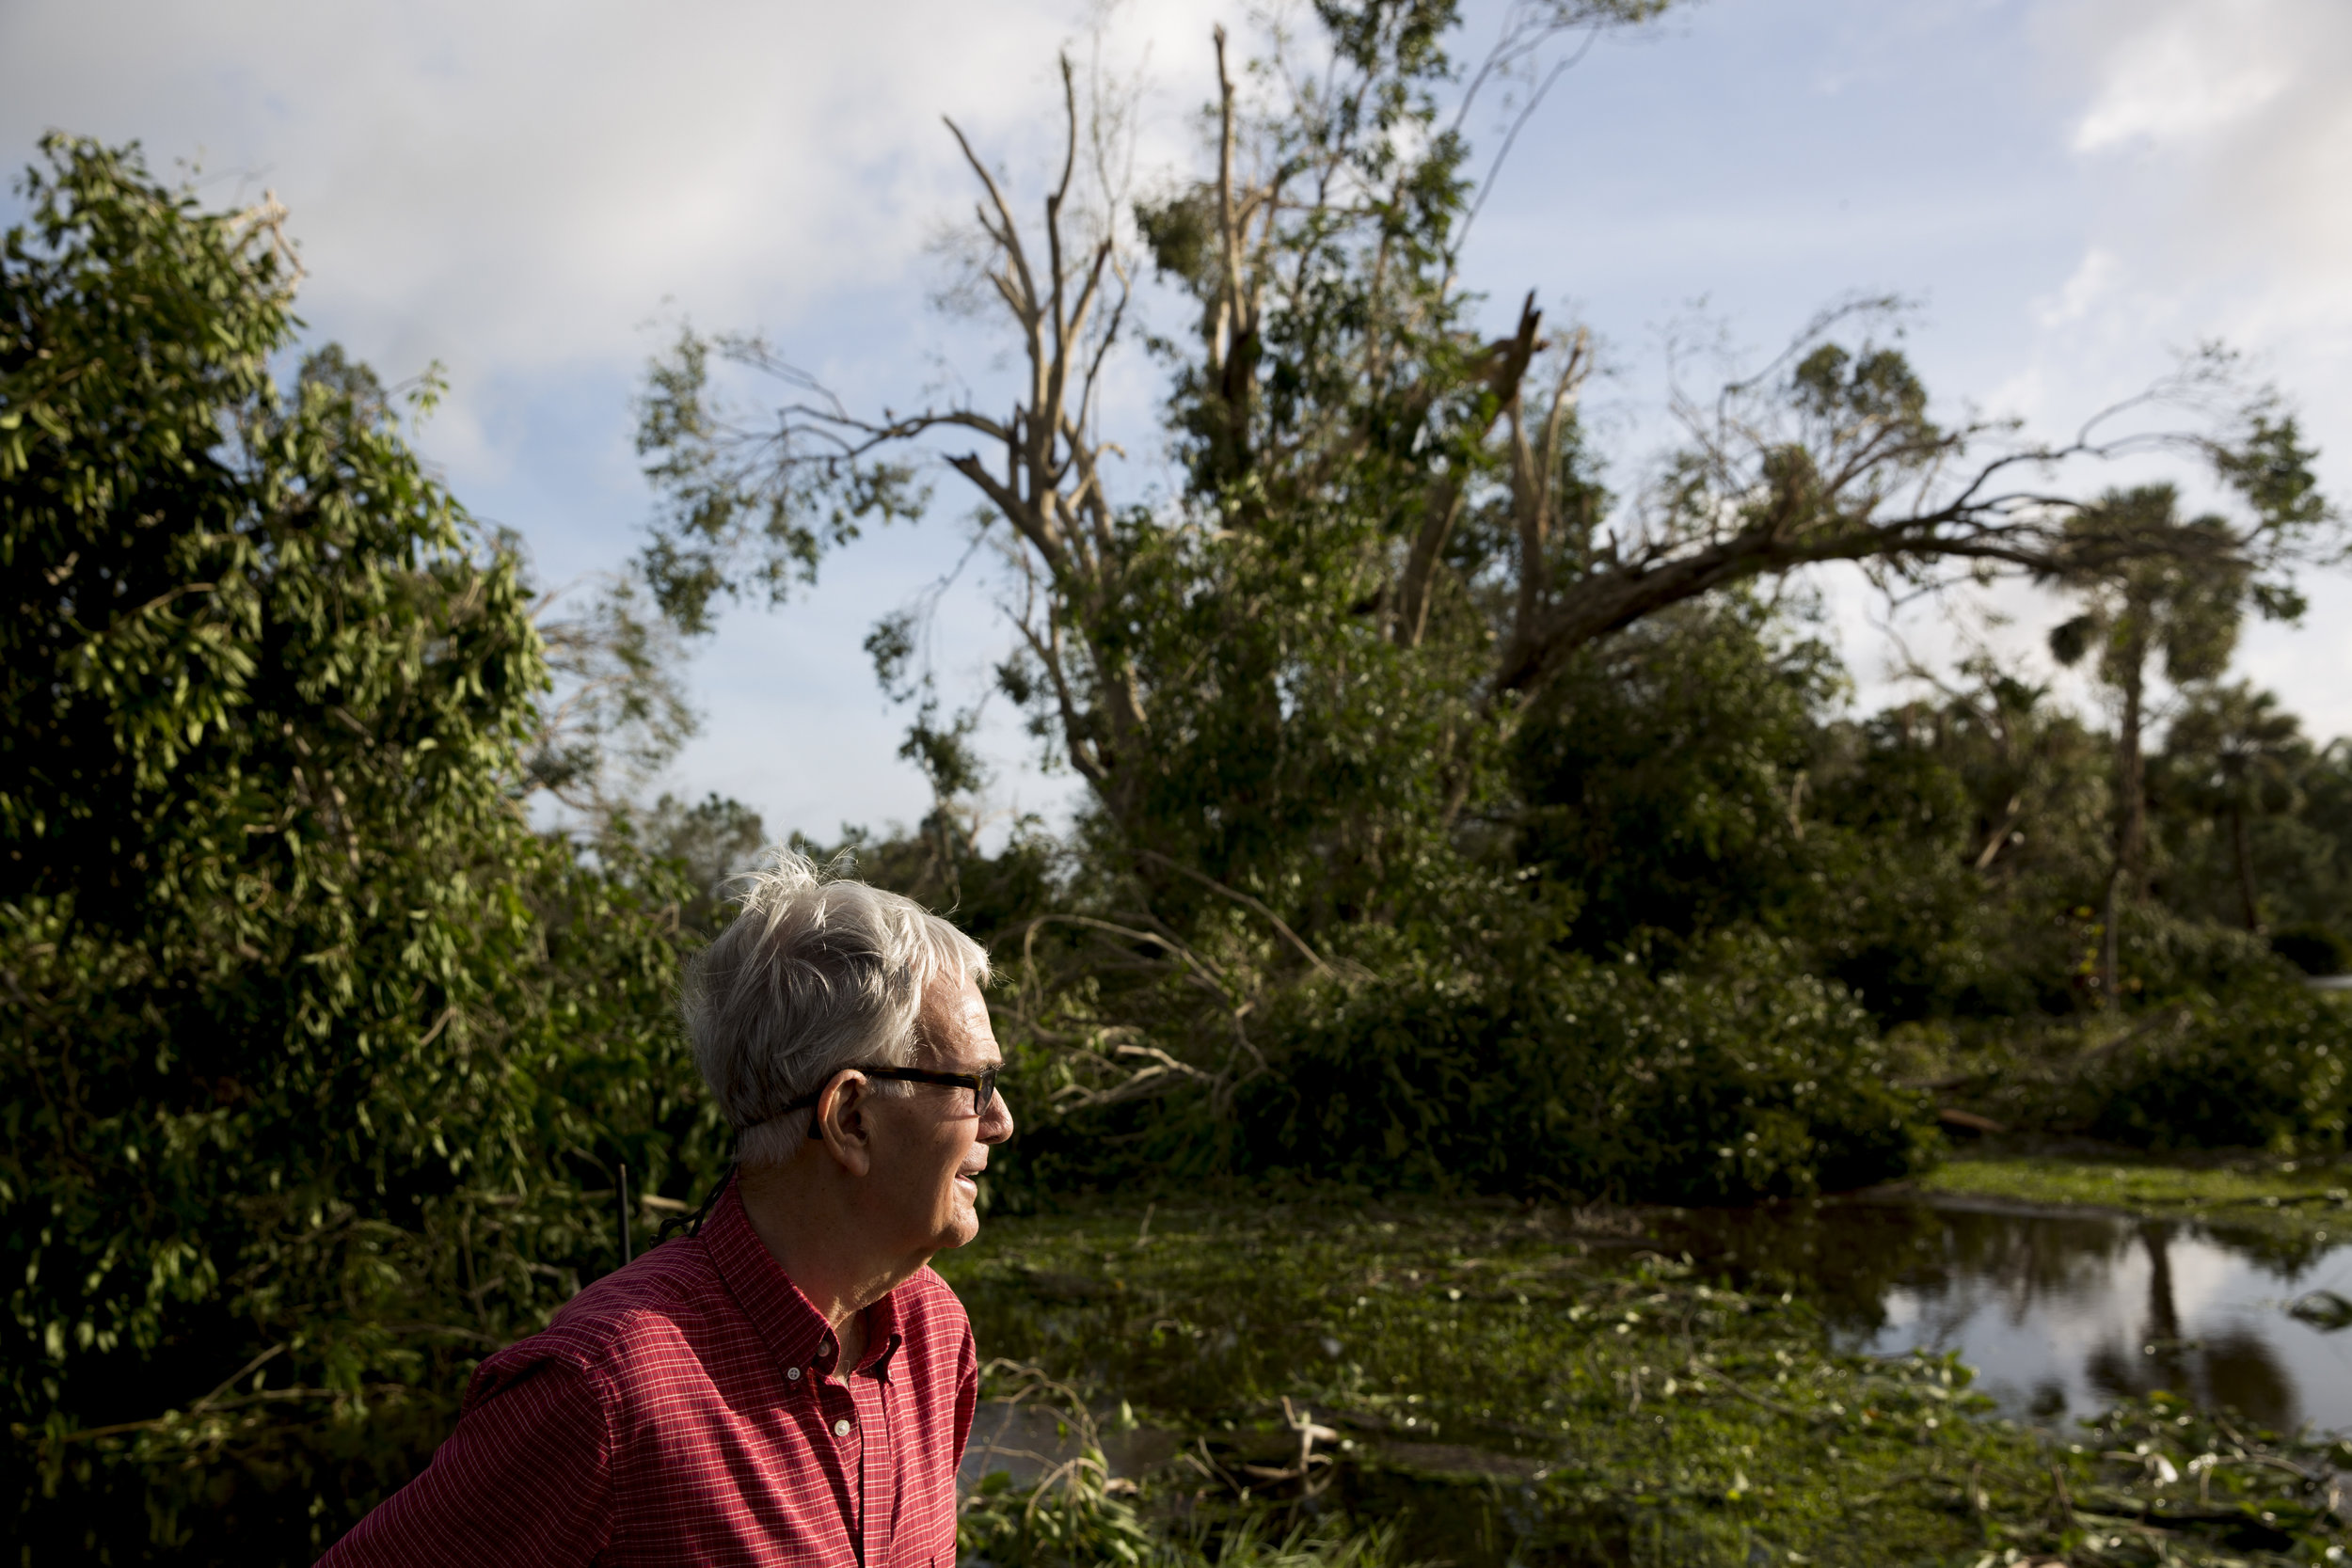 0911_LF_HURRICANE IRMA DAMAGE 13.jpg